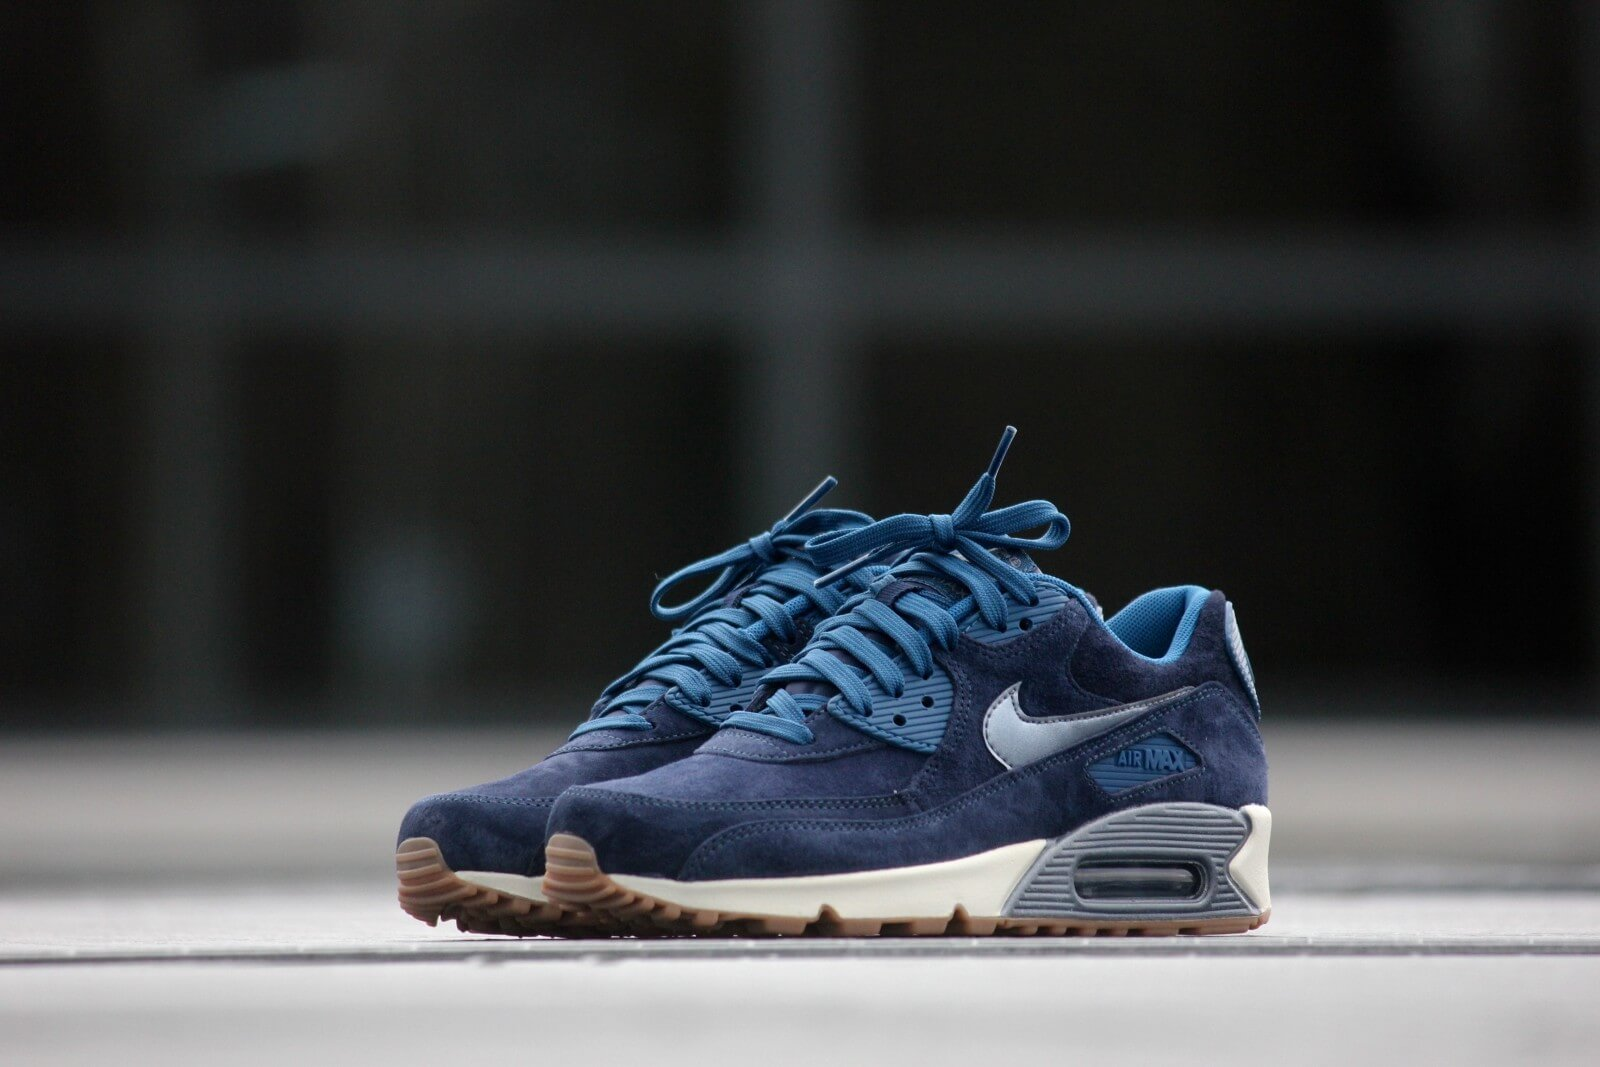 Nike Wmns Air Max 90 Prm Suede Midnight Navy 818598 400